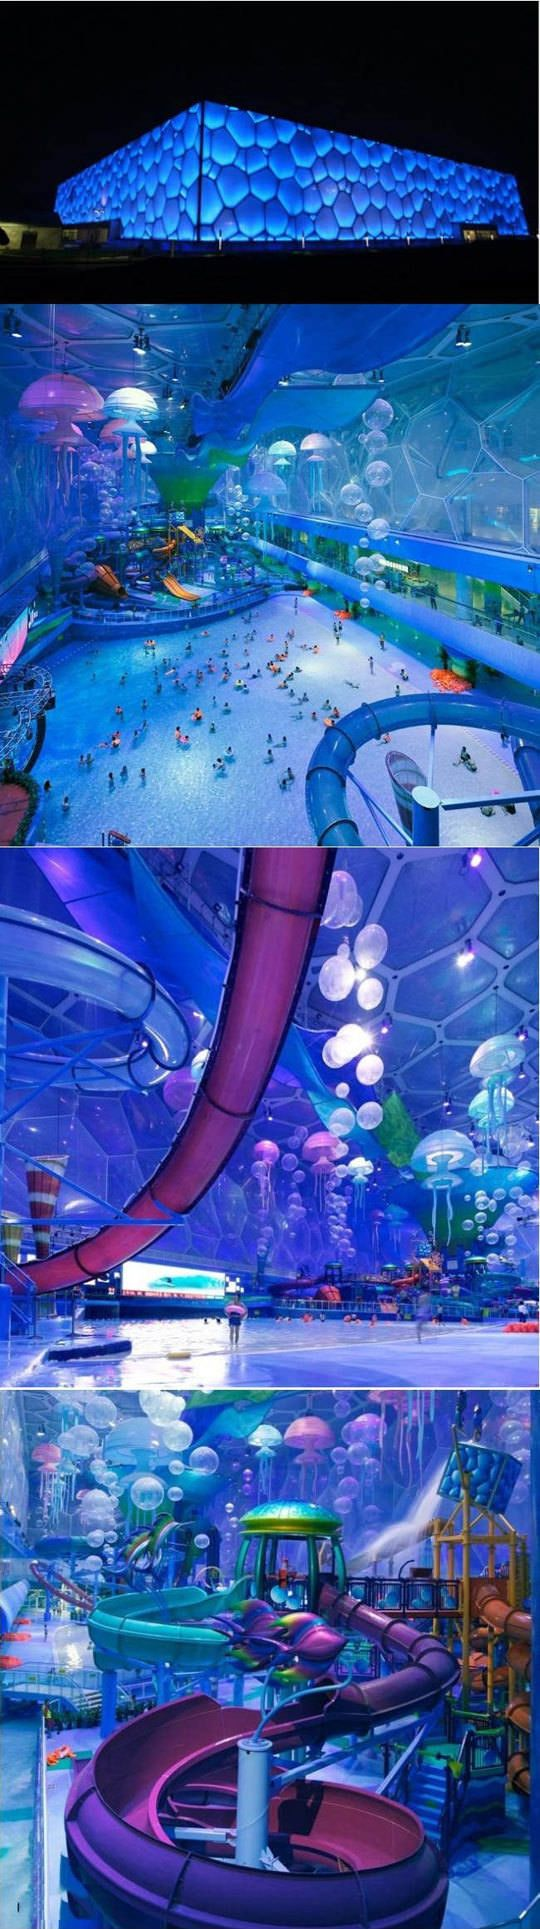 Used during Beijing Olympics, now a waterpark...